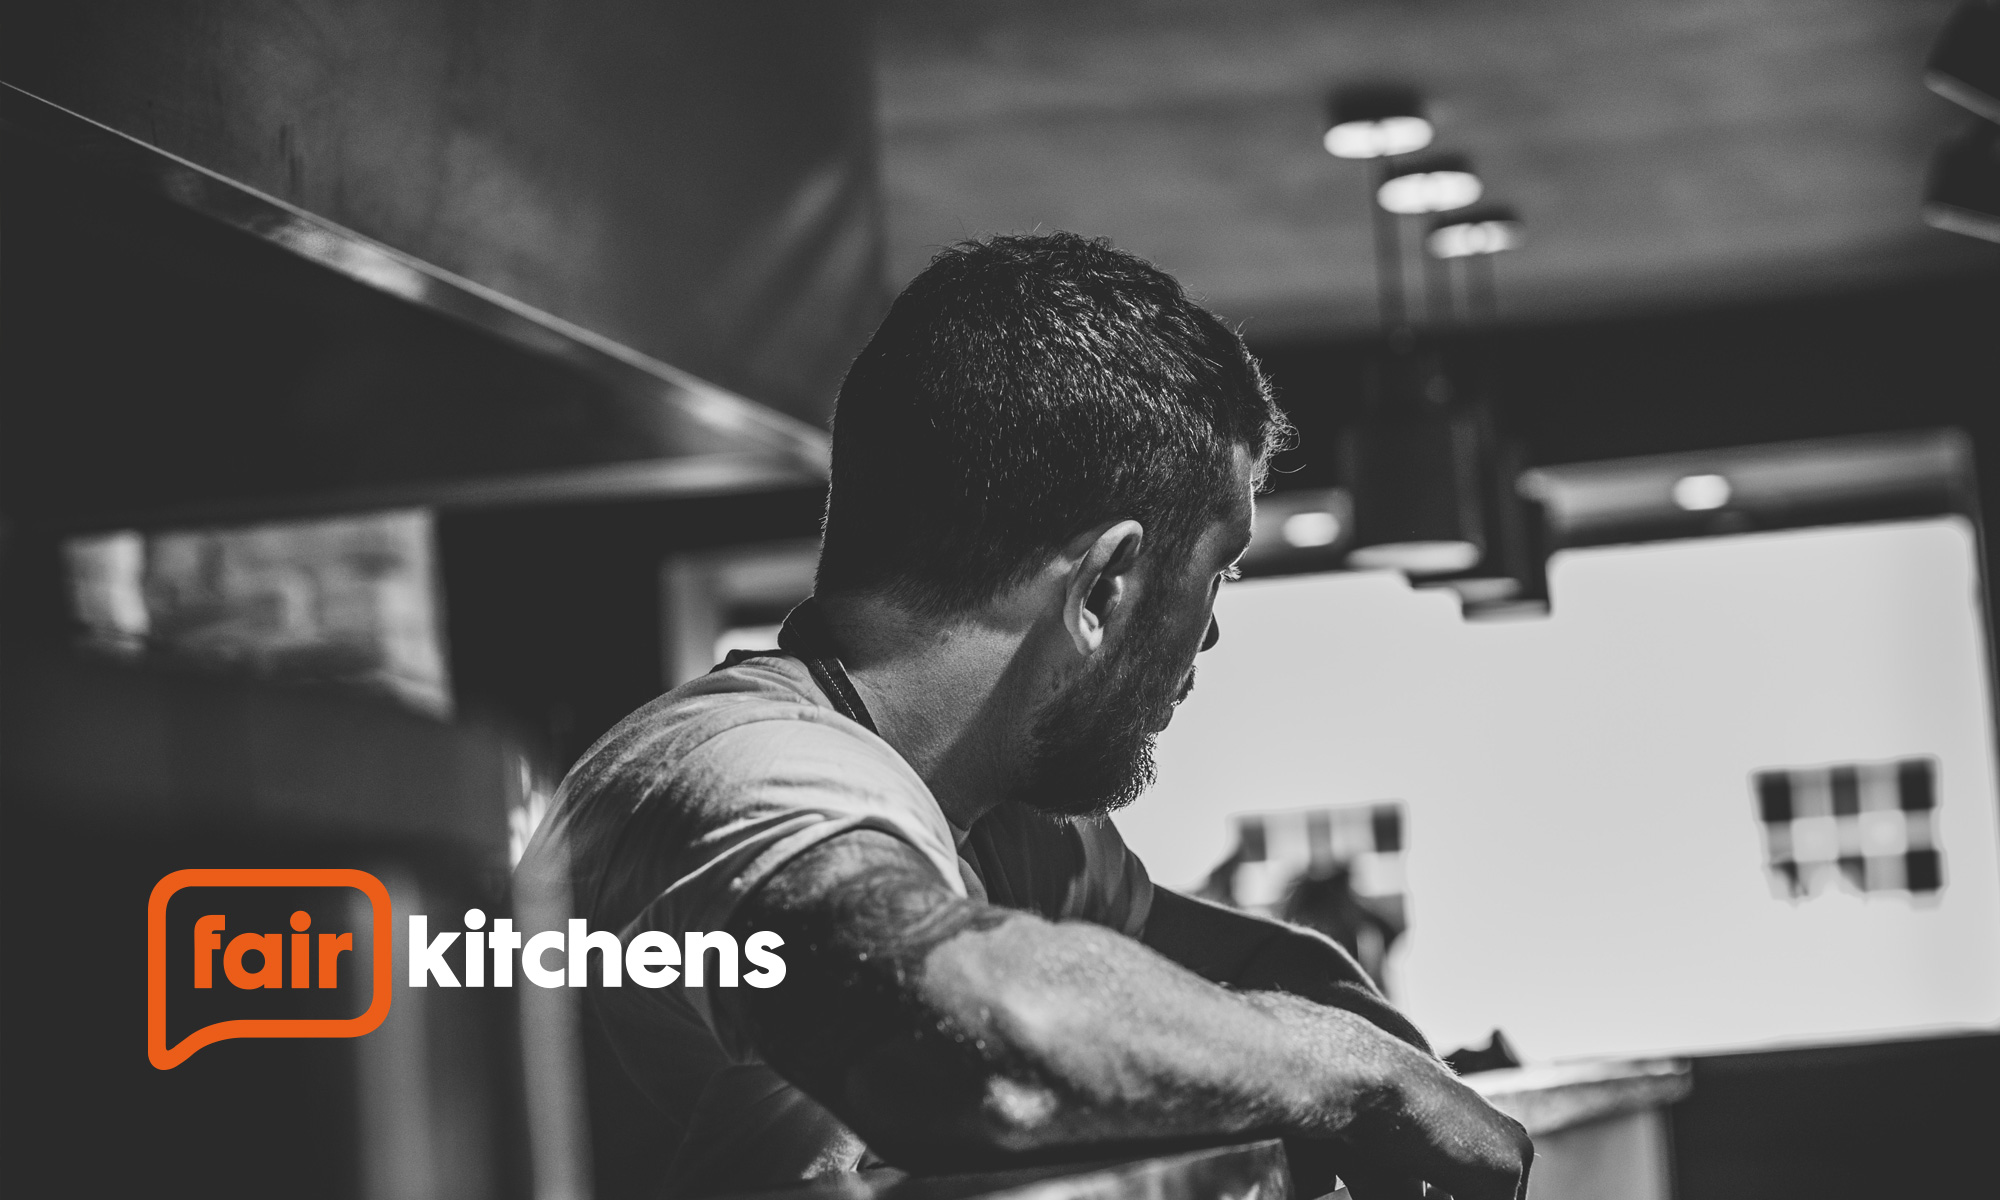 fairkitchens_Large